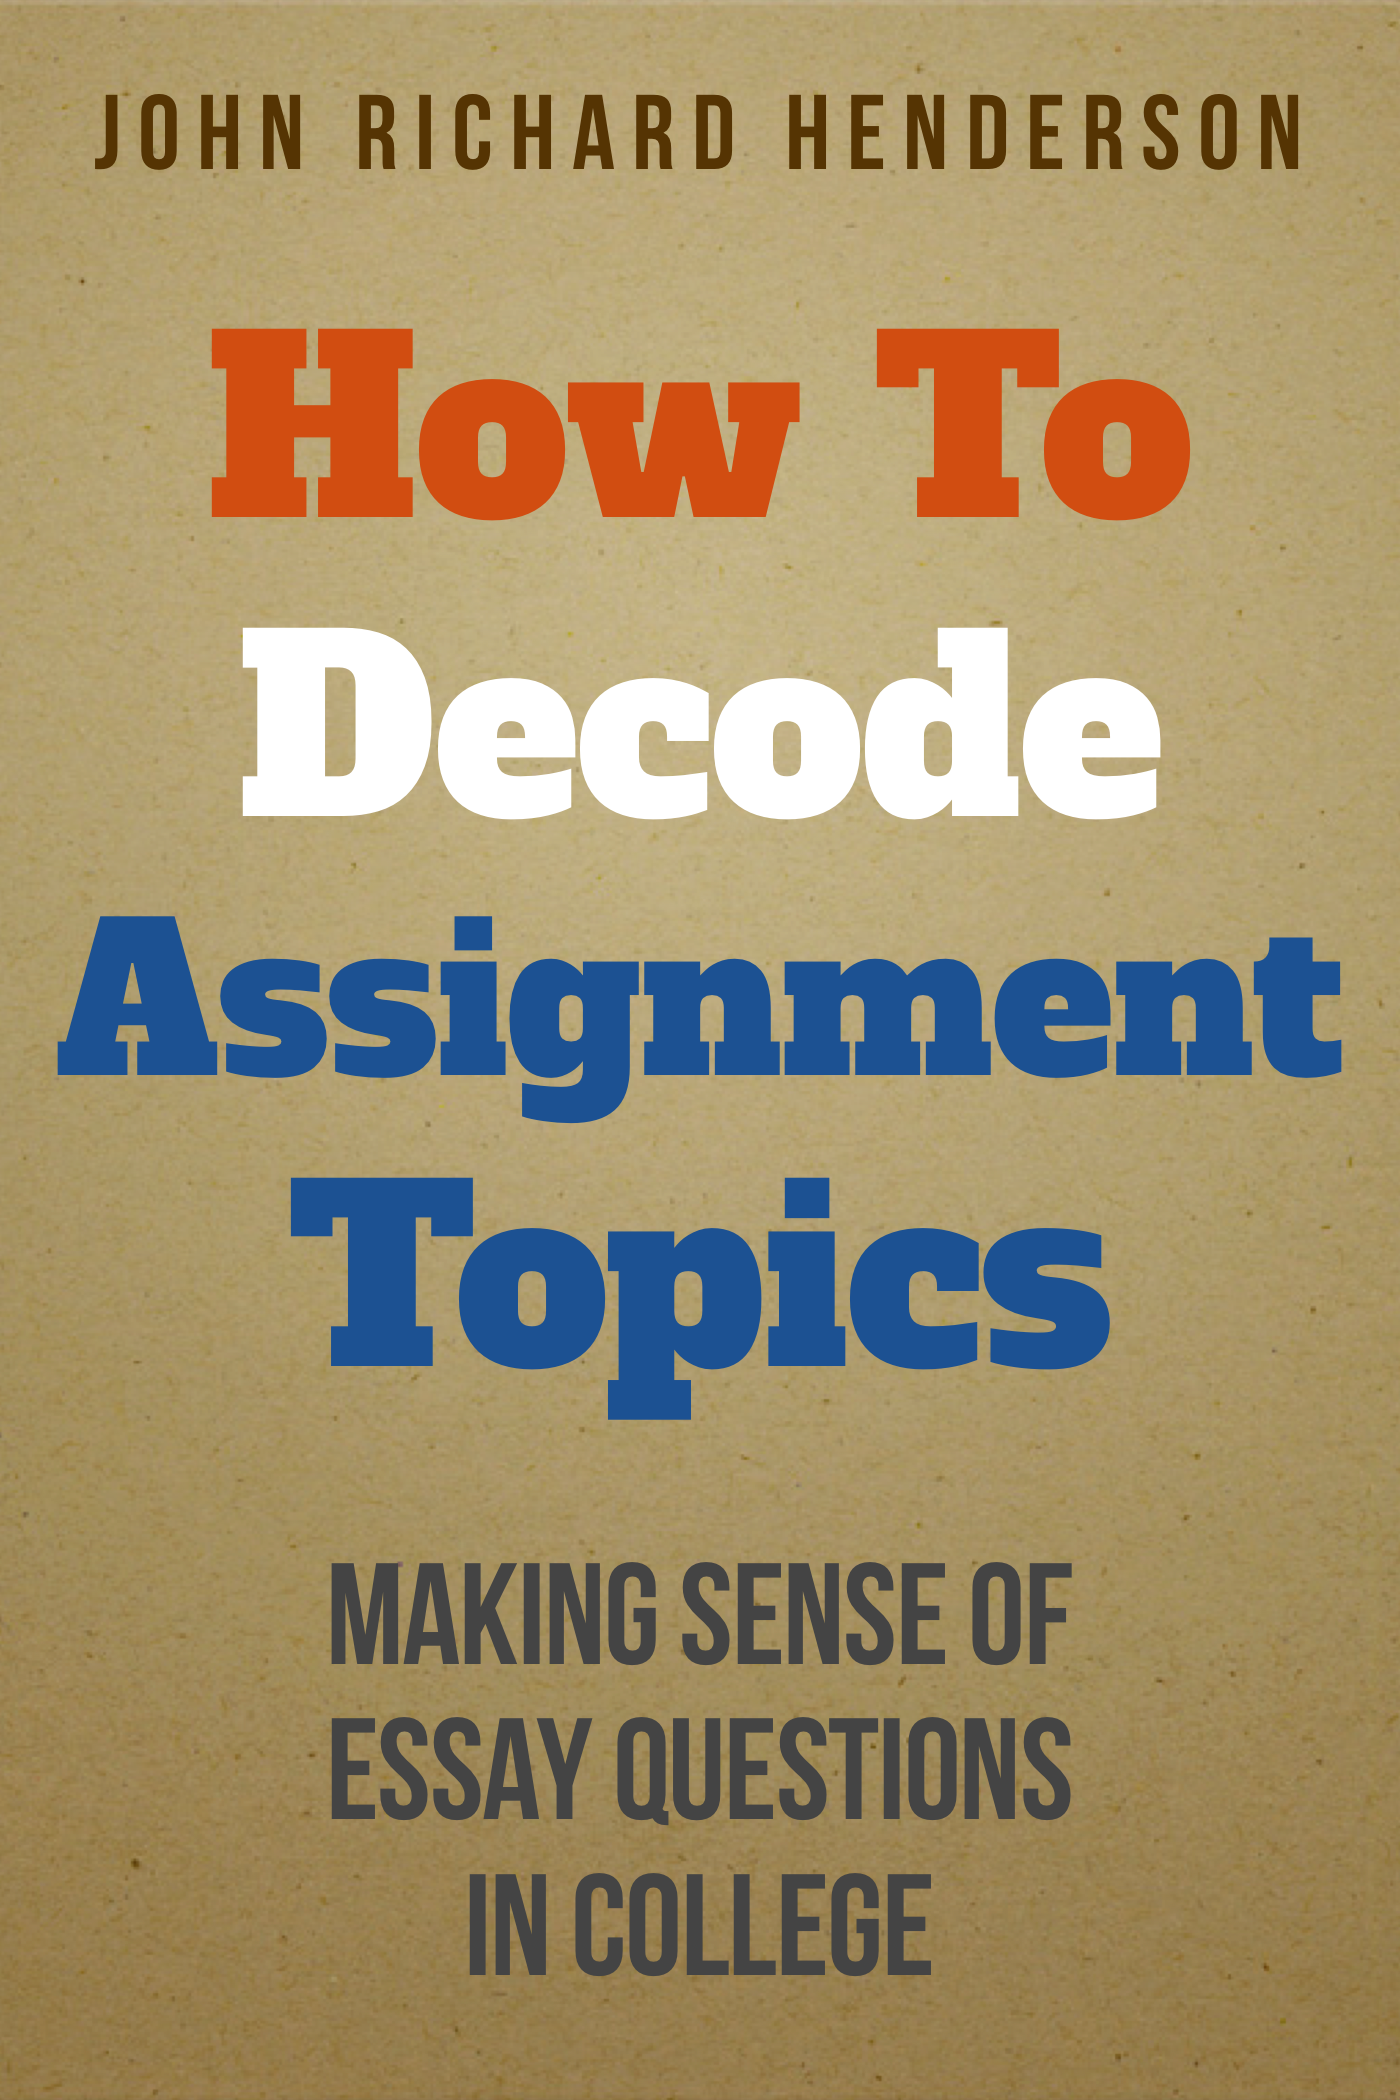 making sense of data 2 essay Discover great essay examples how to outline and structure an essay learn how to establish a clear sense of direction.